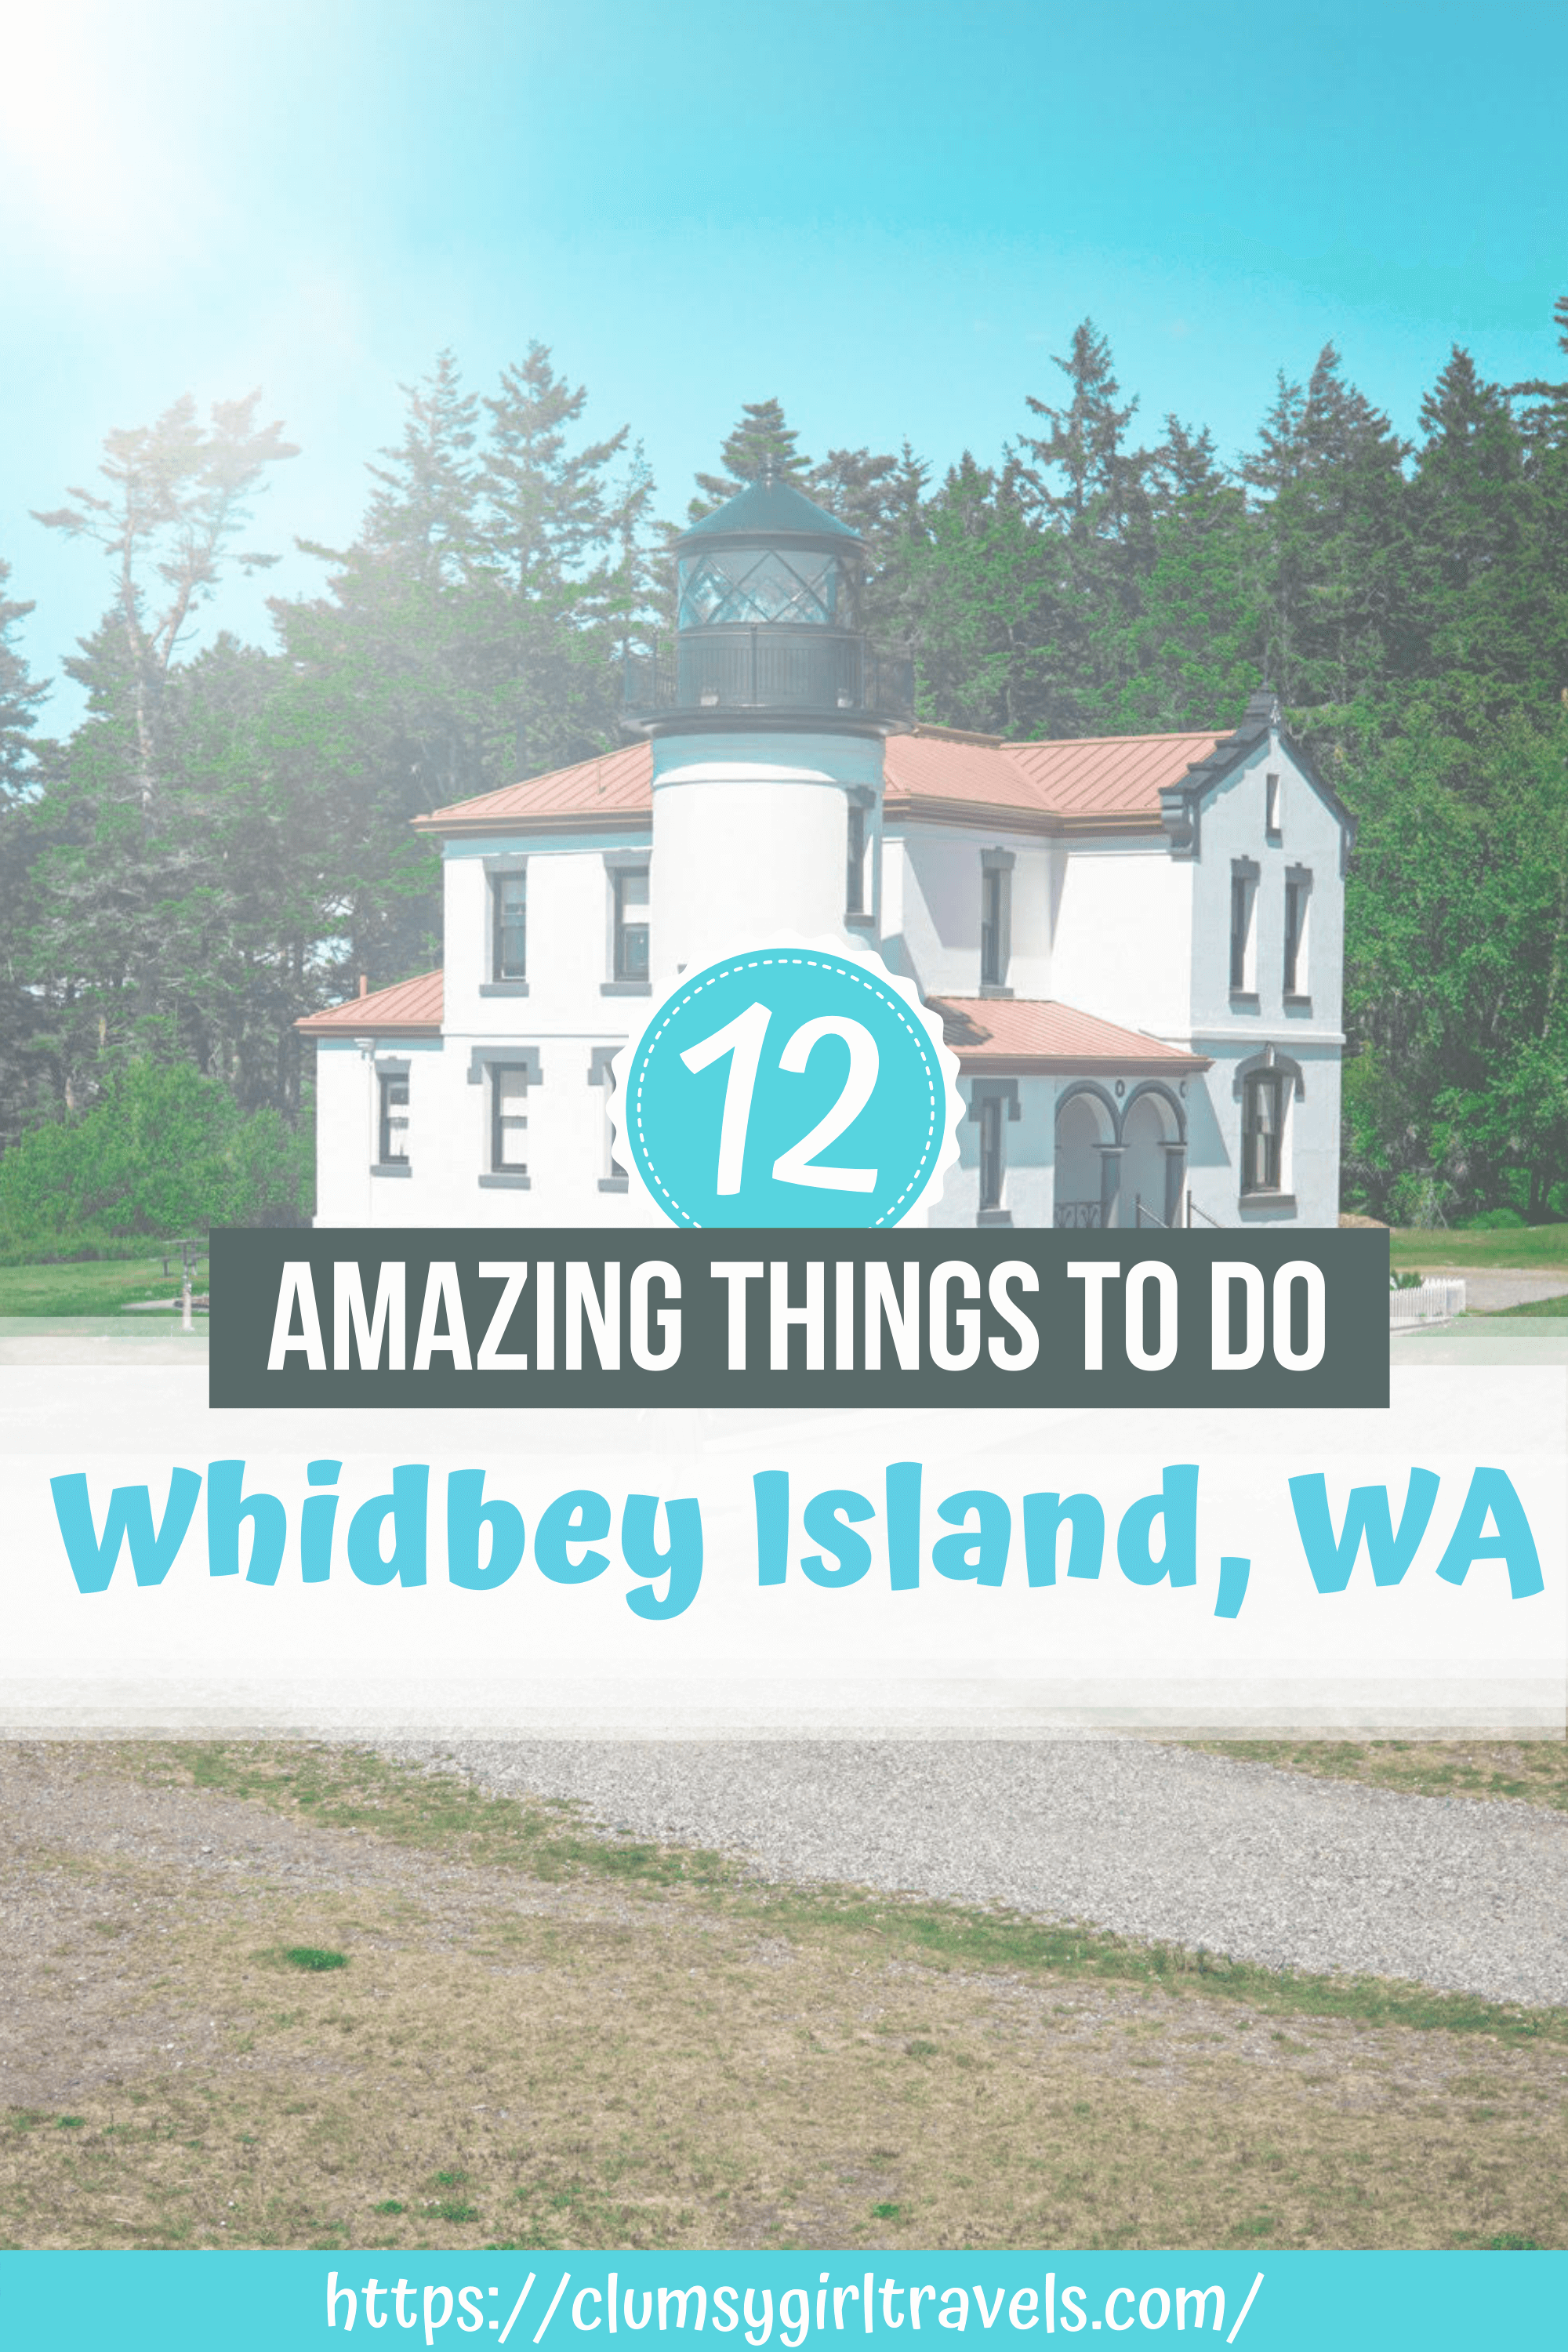 If you are looking for the perfect Weekend getaway, Whidbey Island is the place! This guide will show you the best things to do on Whidbey Island.